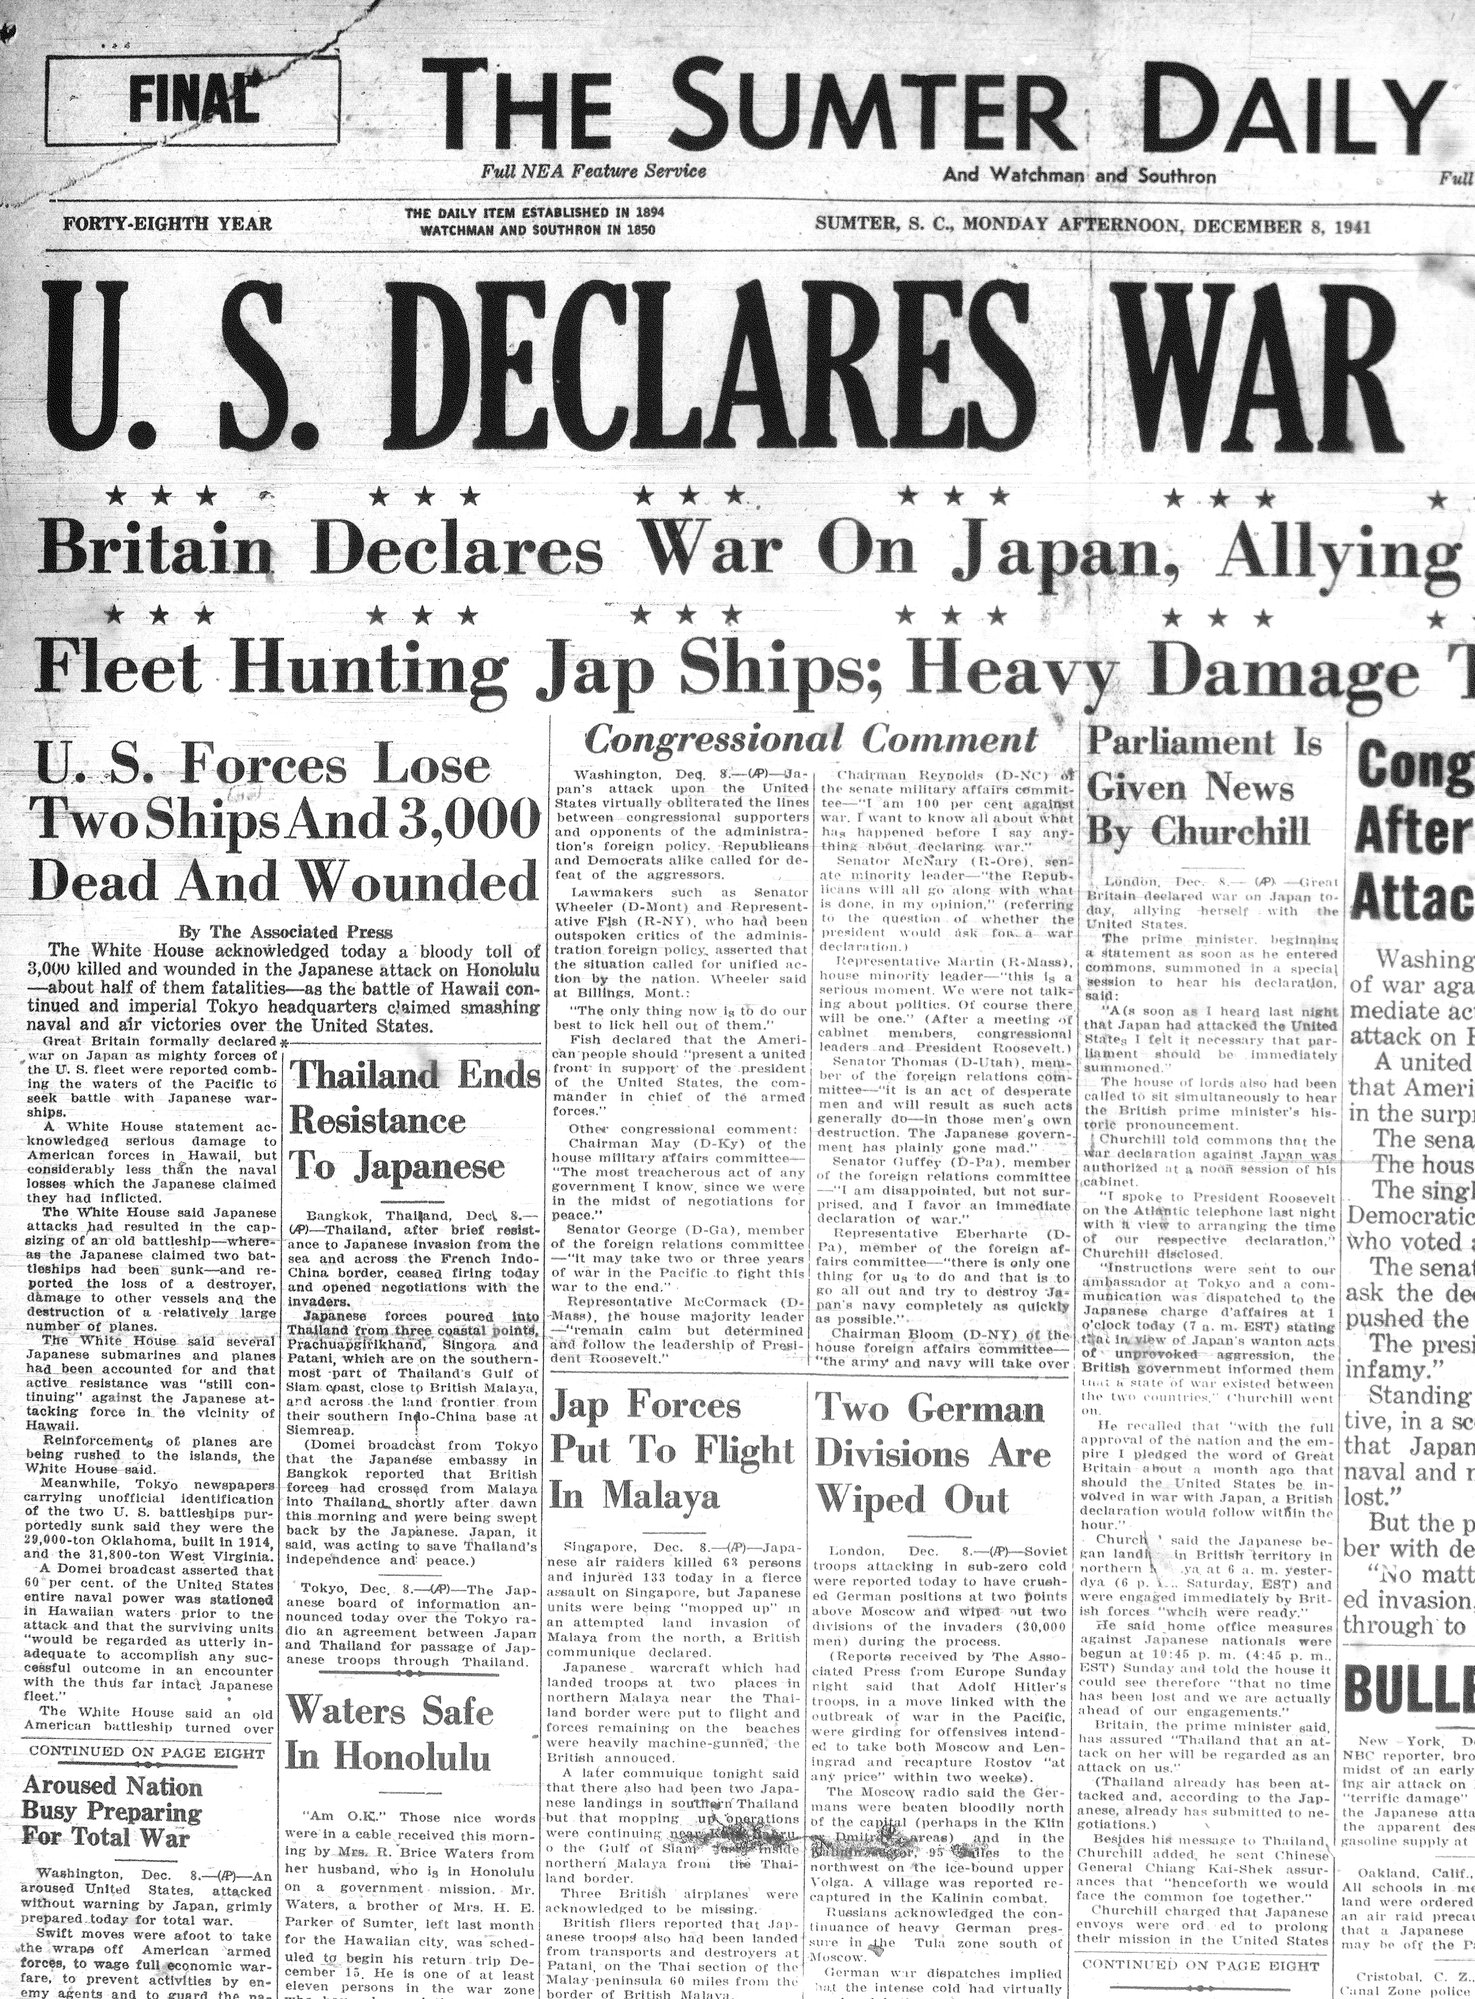 The Sumter Daily Item's Dec. 8, 1941, edition announces the war on Japan after Pearl Harbor was attacked the previous day.